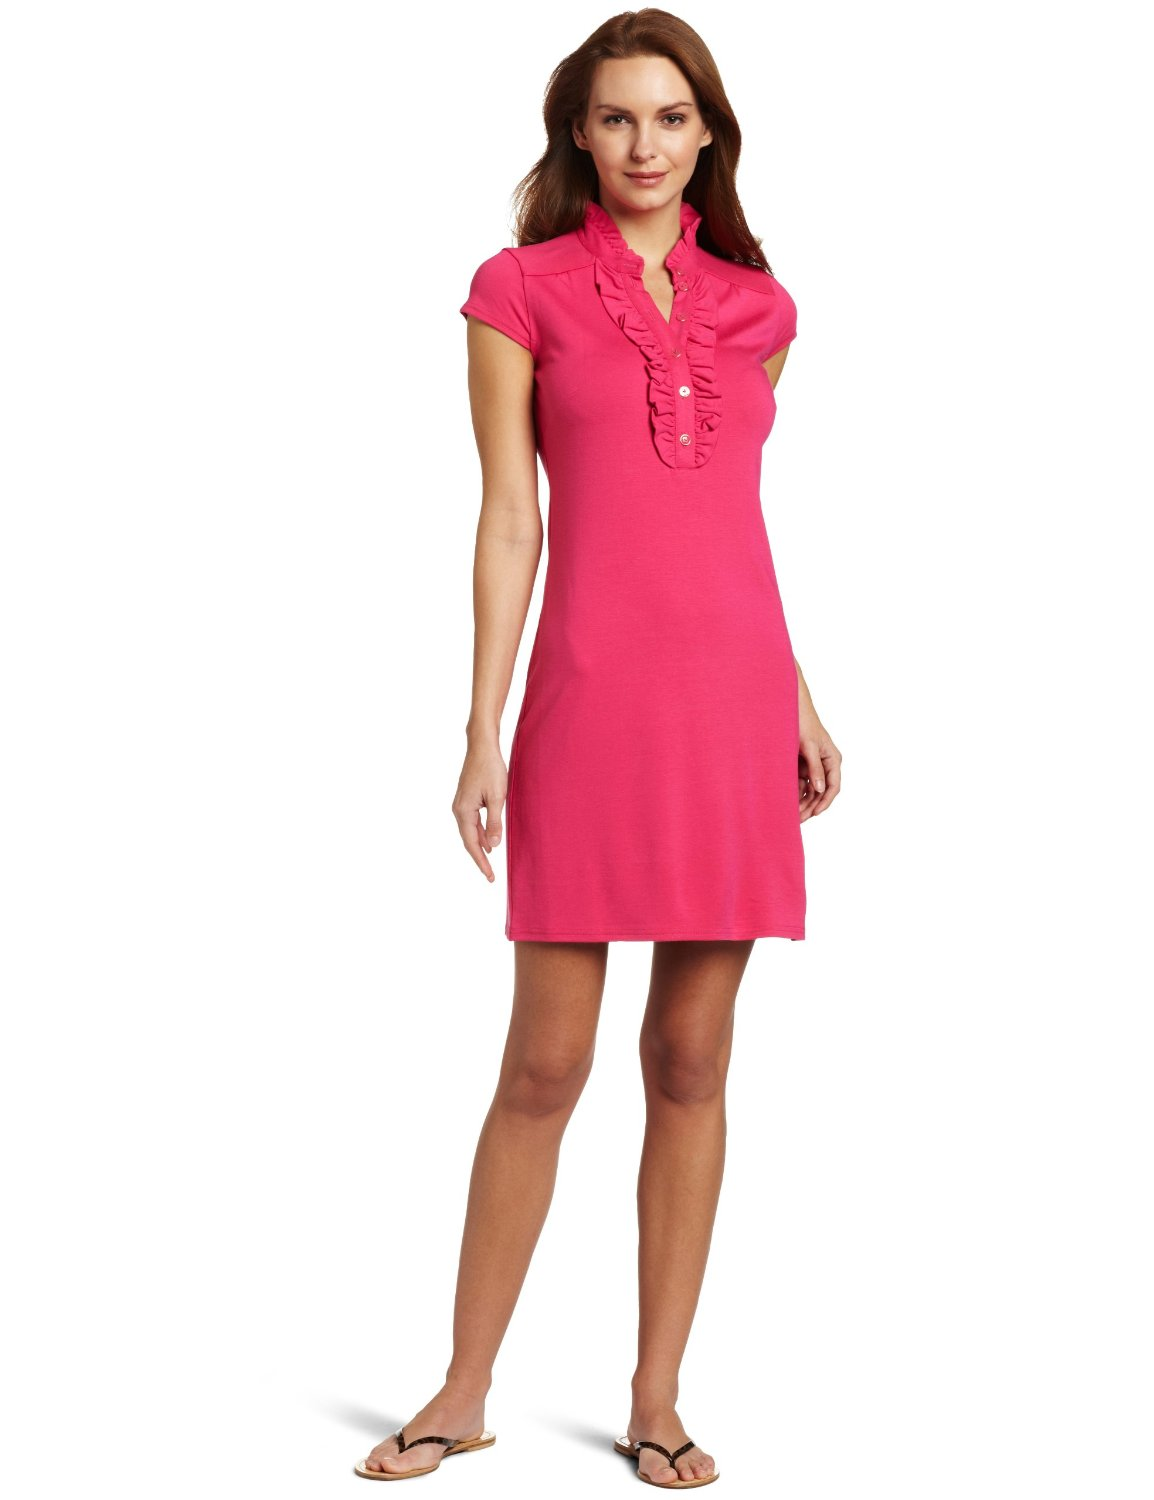 Pink Dresses | PINK! Pink Shoes, Pink Accessories and Pink Stuff